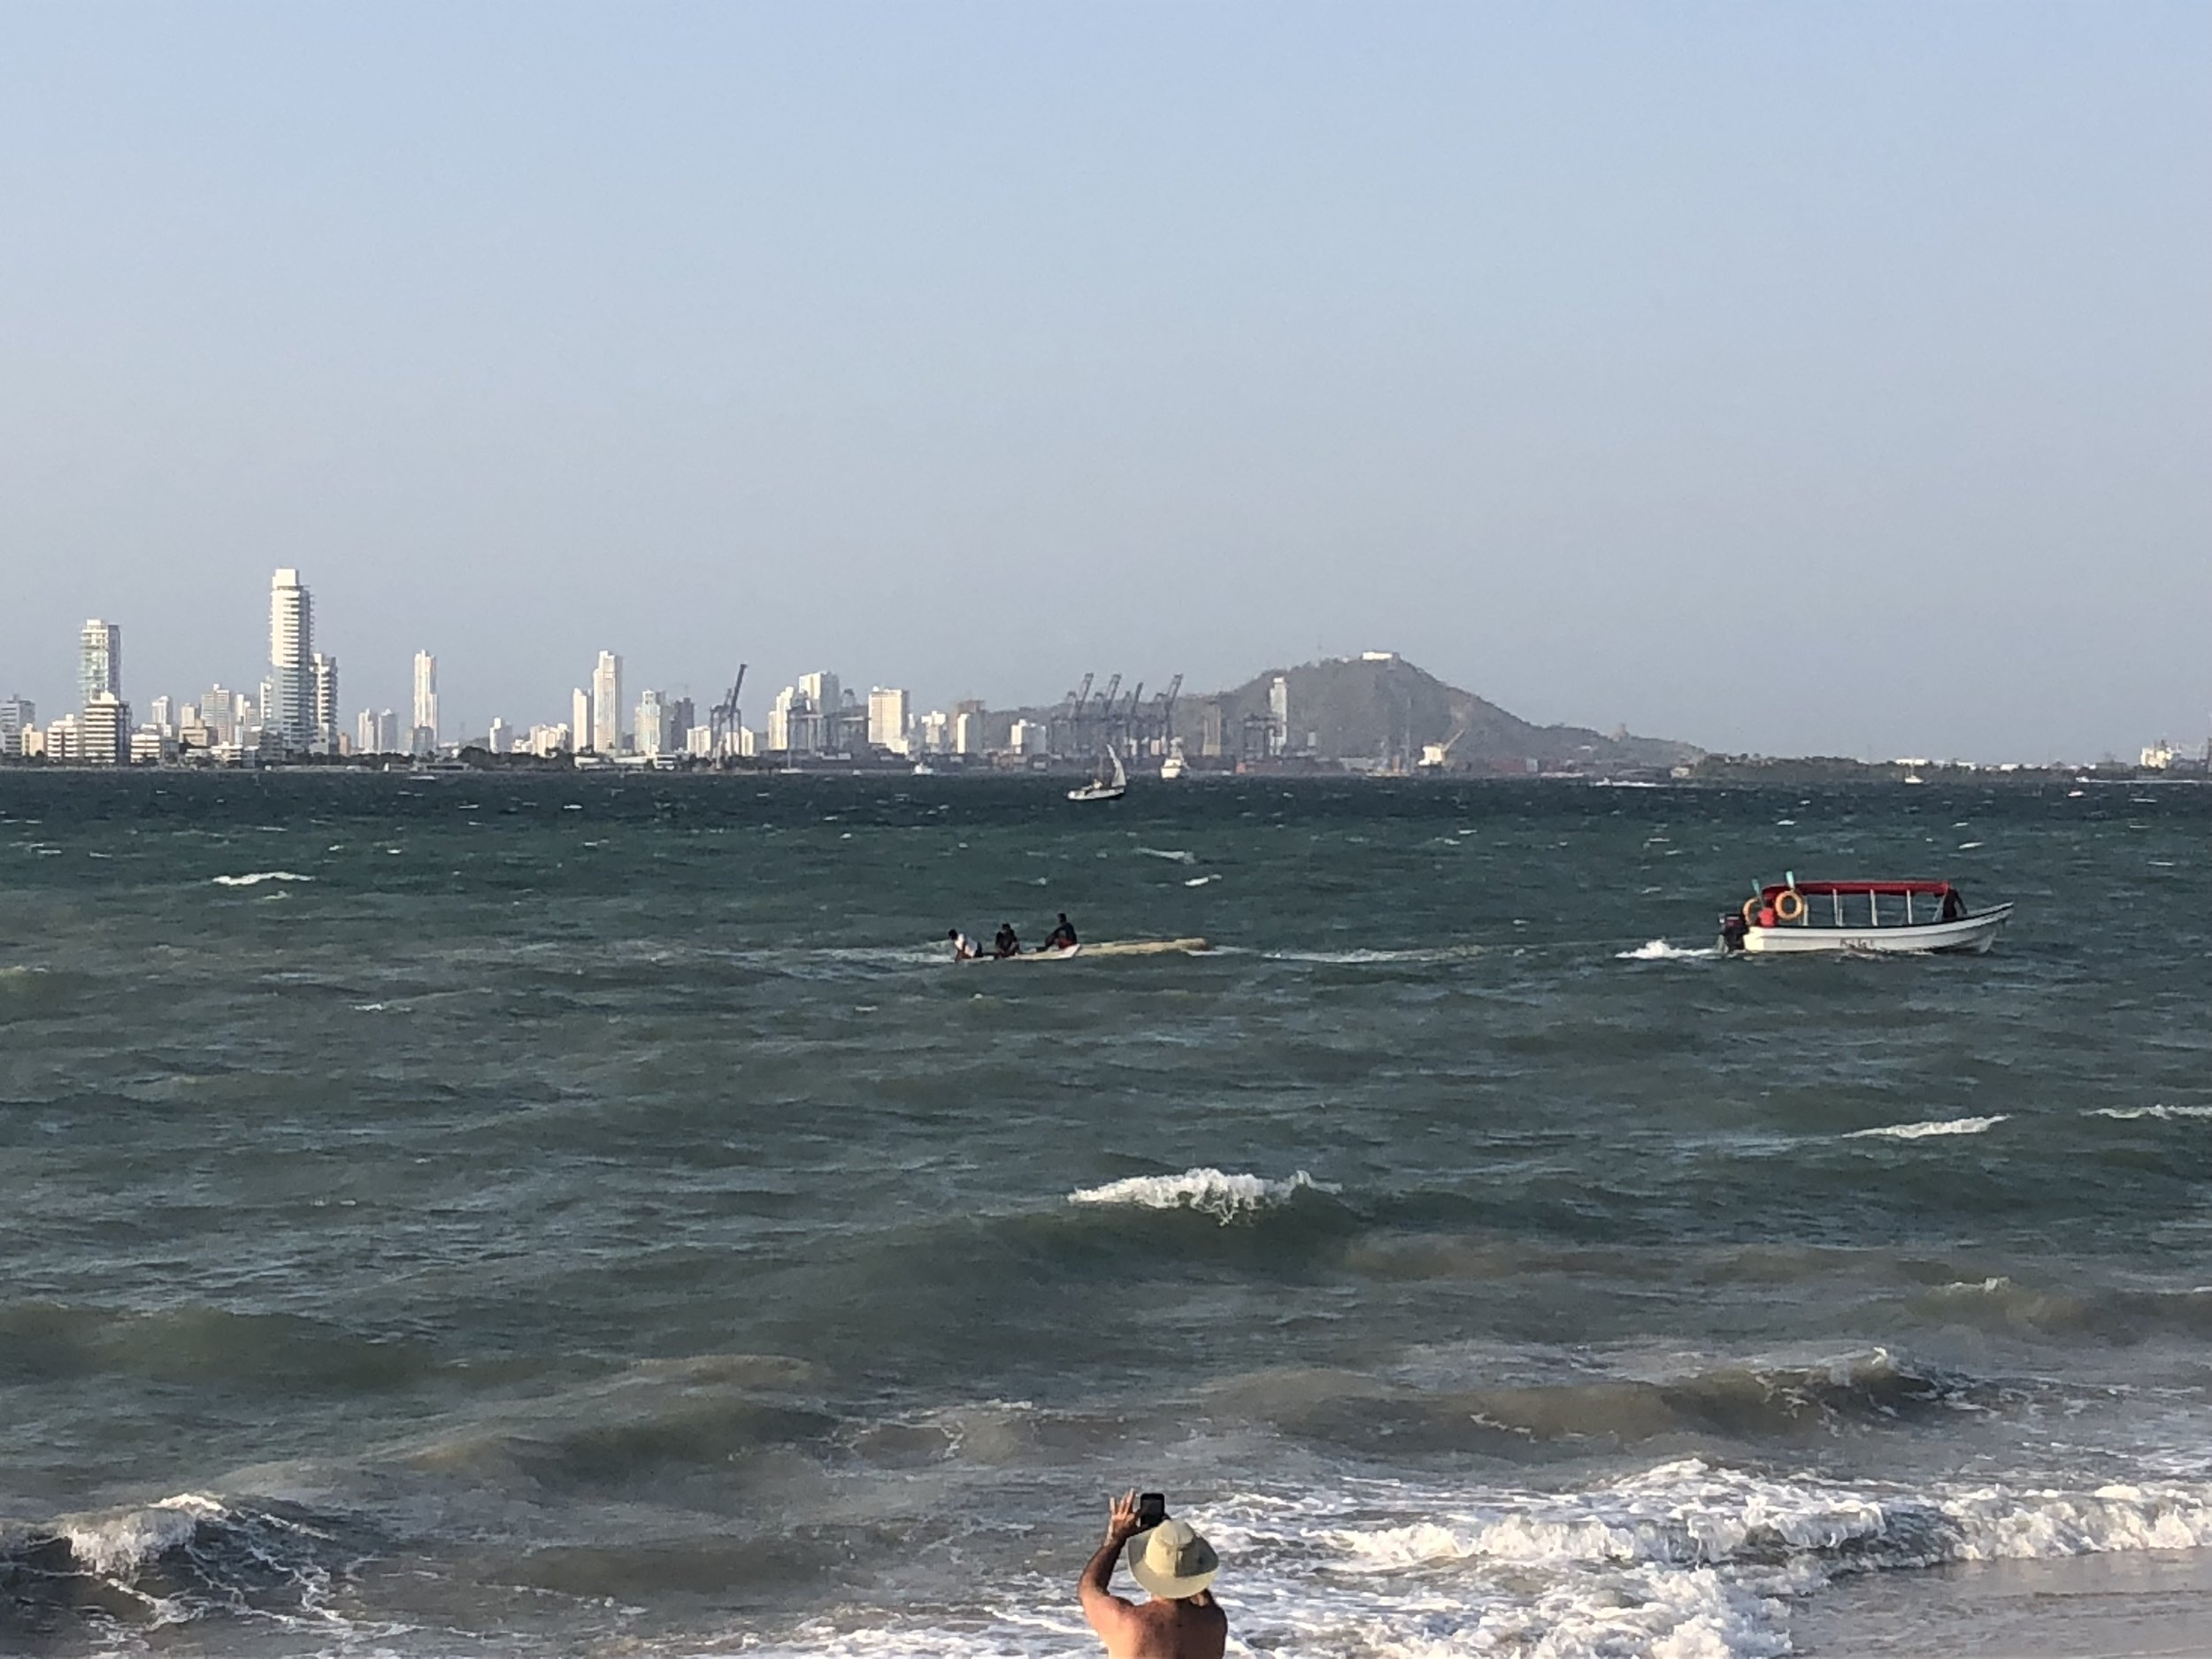 The capsized boat being towed into shore.